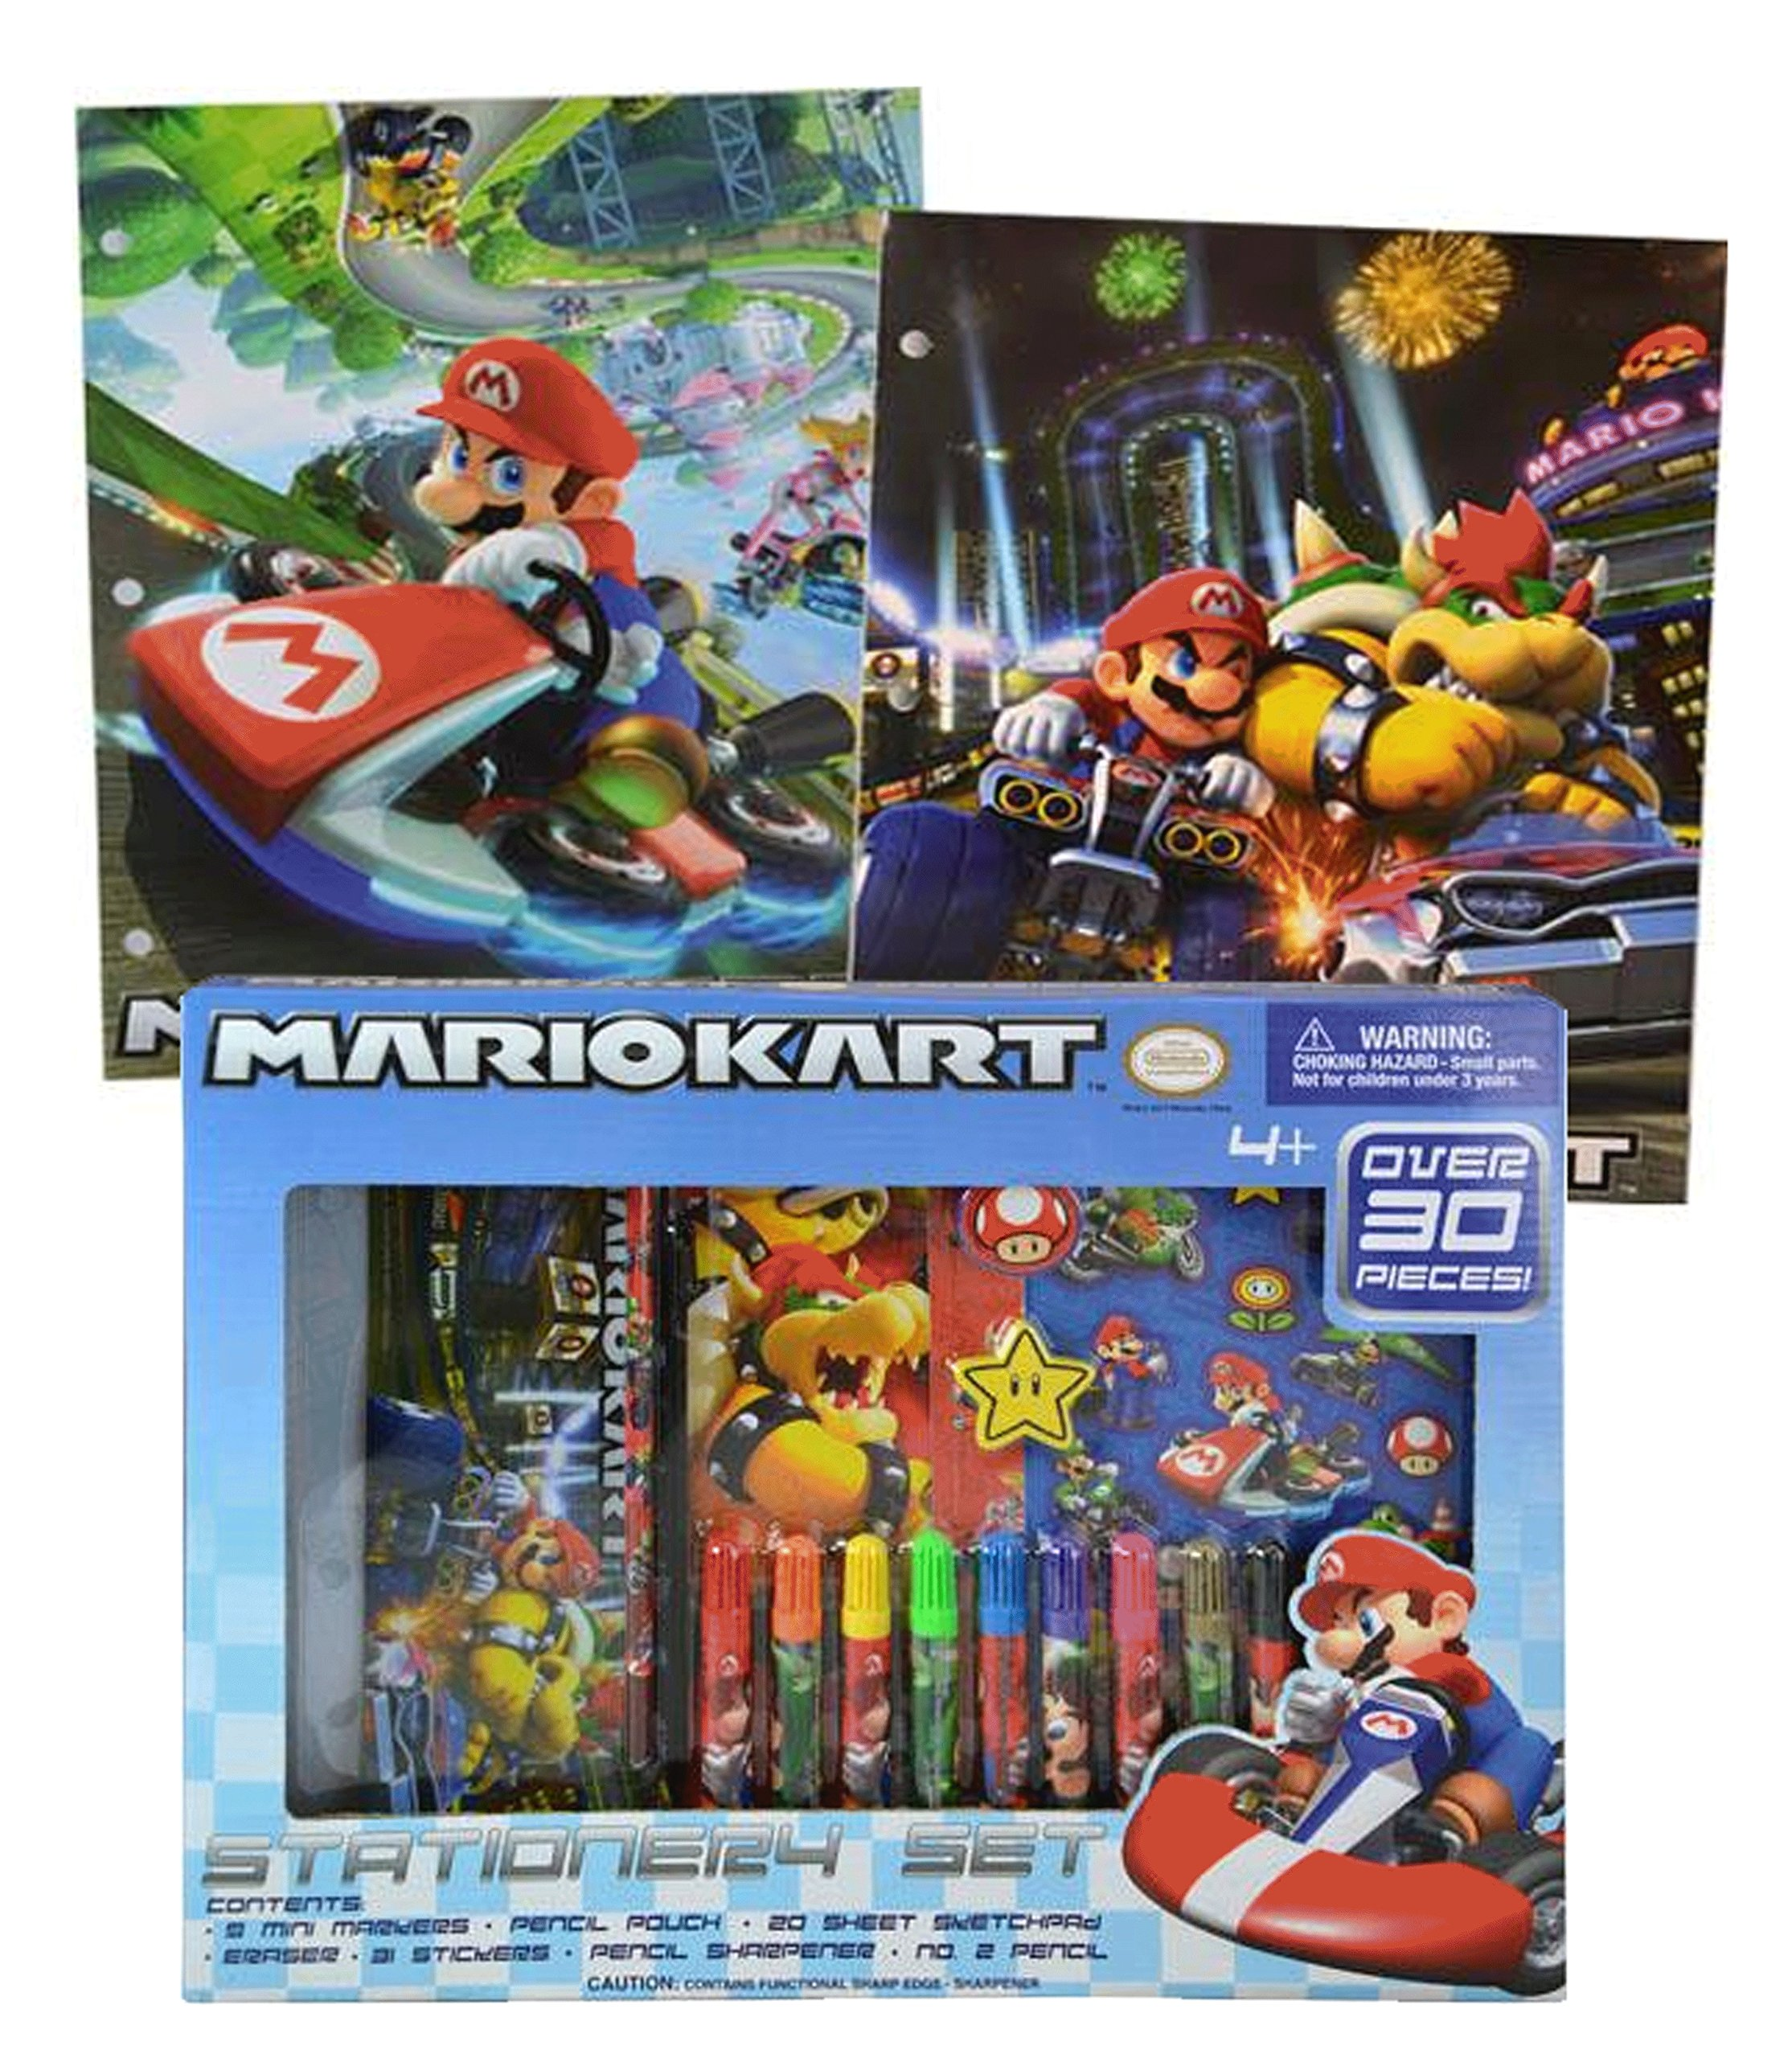 Super Mario Brothers School Supplies Kit Includes Mario Markers, Pencil Pouch, Note Pad, Eraser, Stickers, Pencil Sharpener & No. 2 Pencil! Plus Bonus MarioKart Folders!